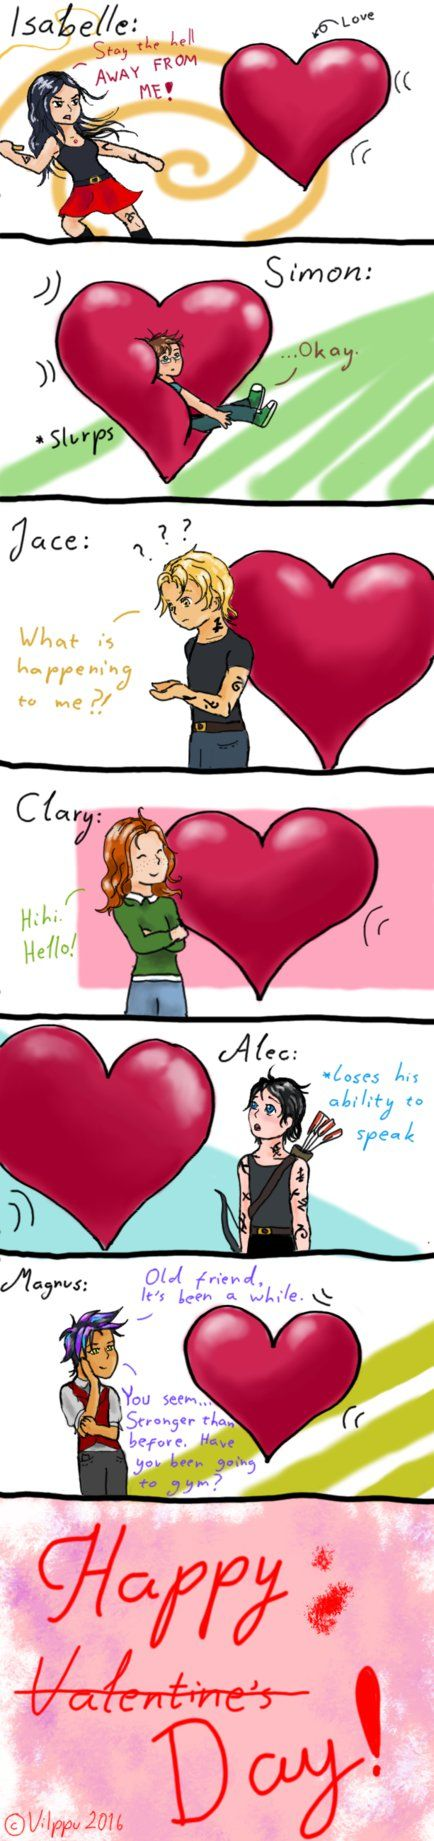 Shadowhunters and Love | with Isabelle Simon Jace Clary Alec and Magnus | #TMI